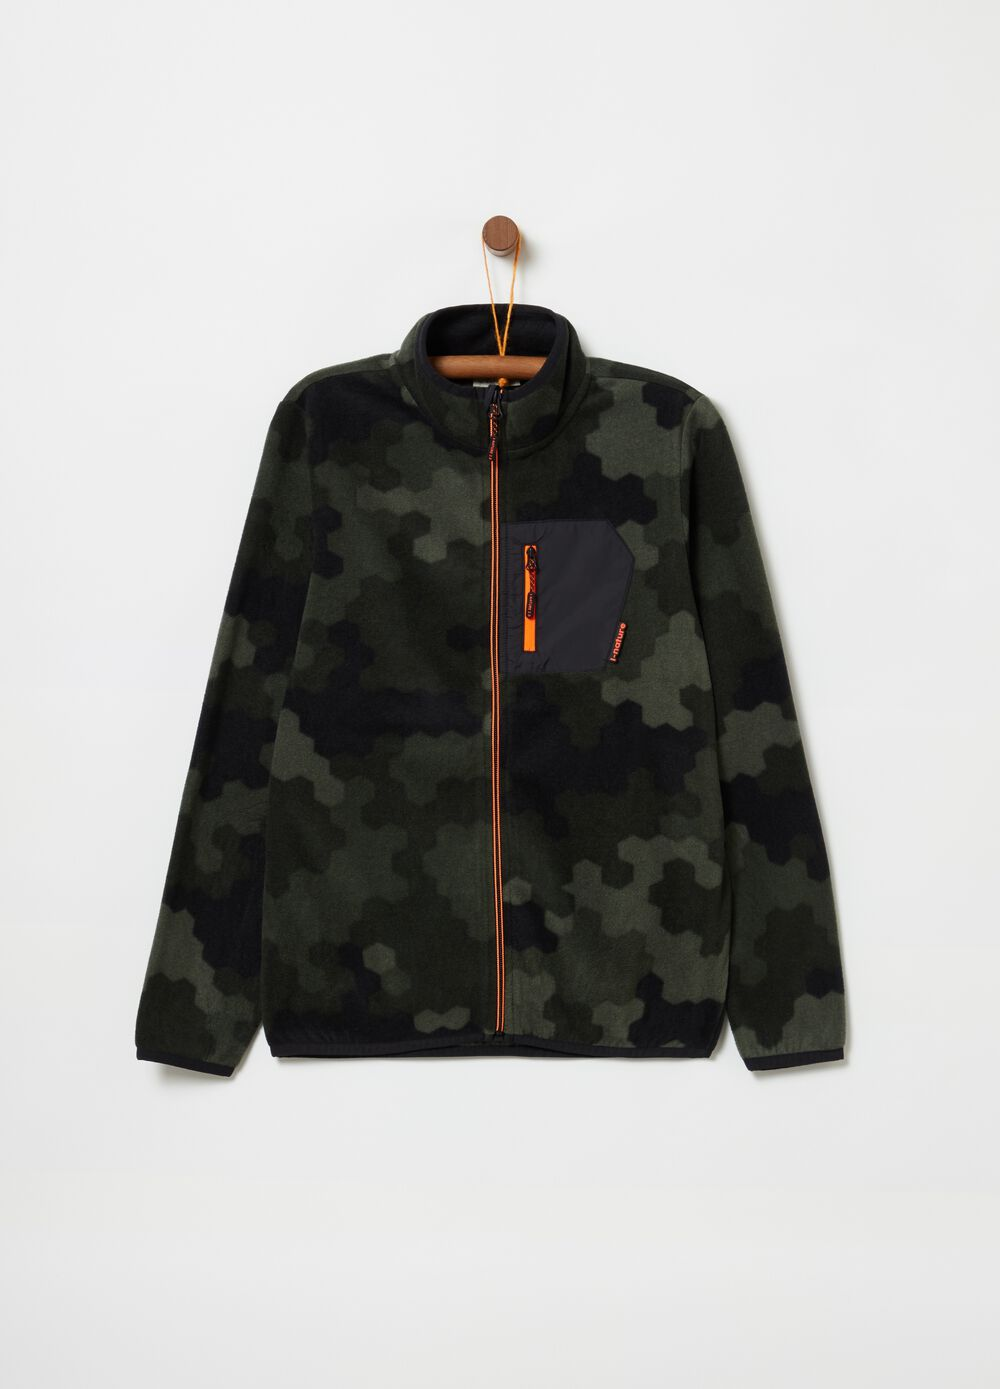 Sustainable fleece sweatshirt with camouflage pattern